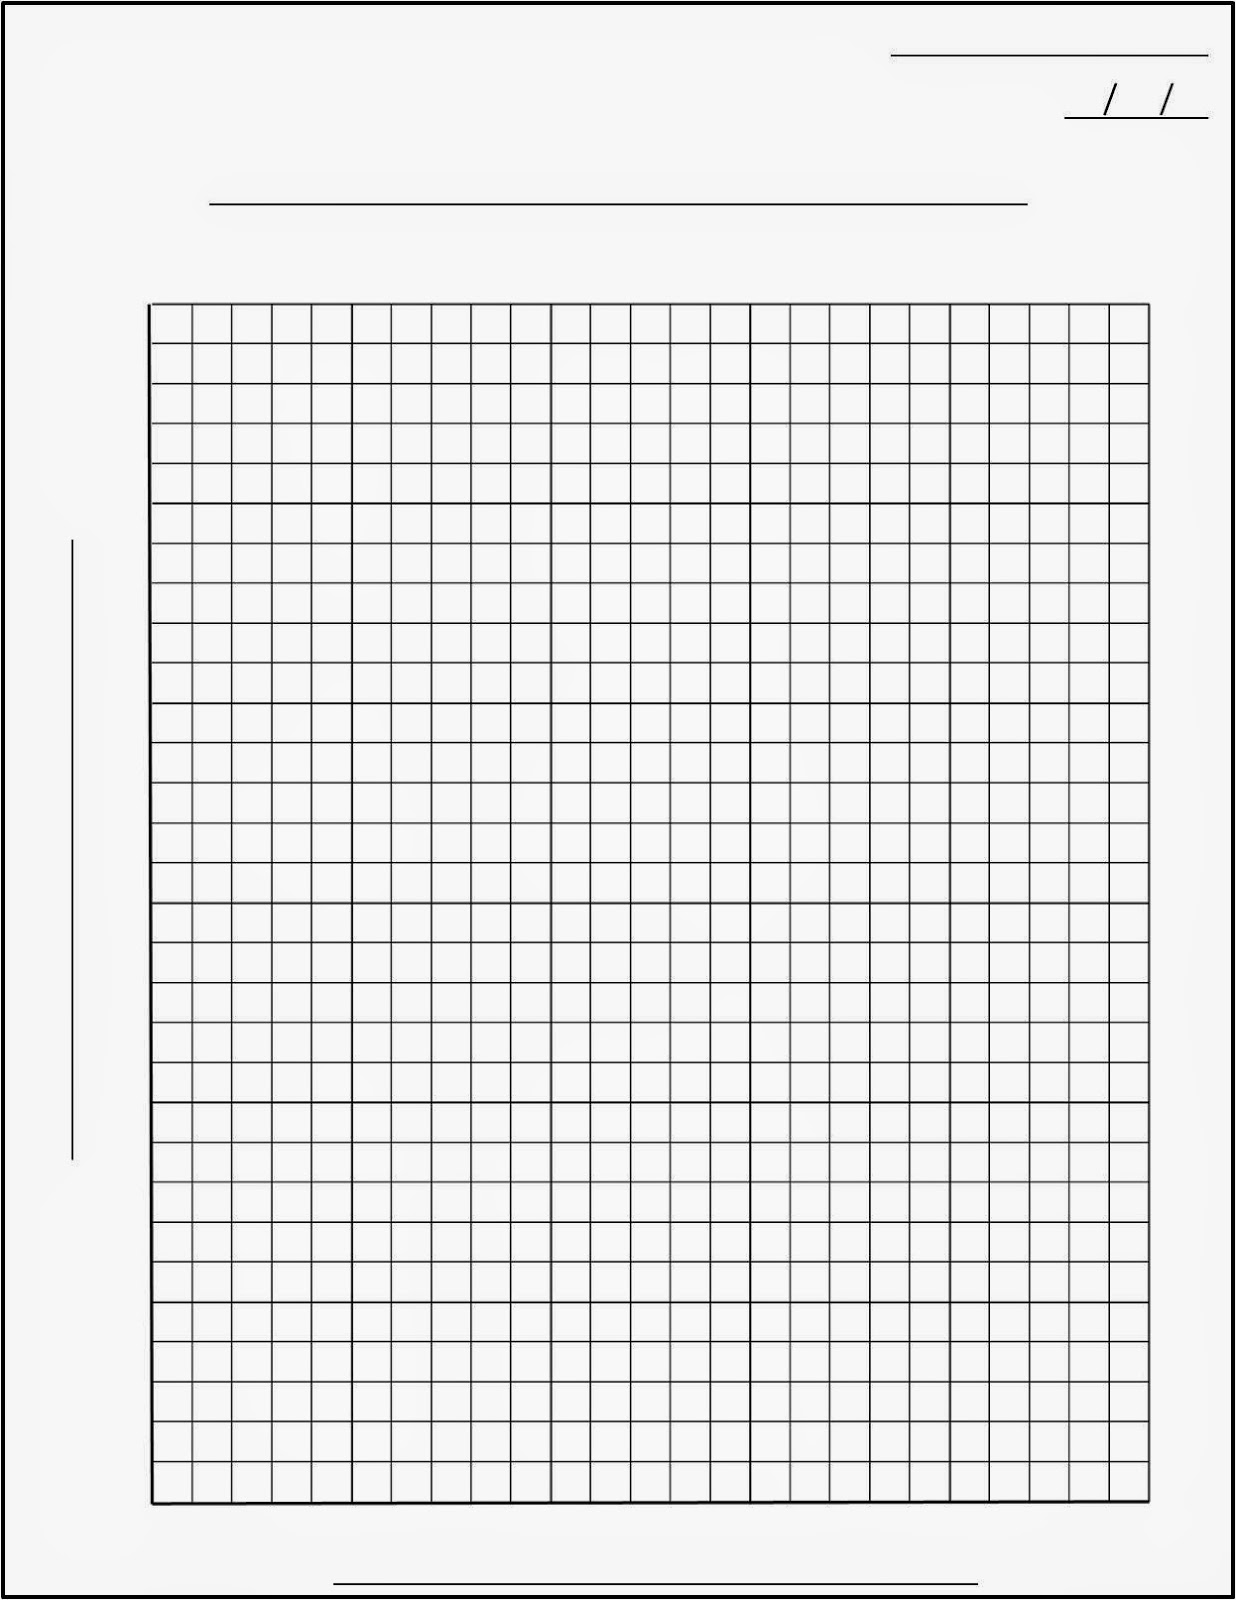 Fun Coordinate Plane Worksheet Lios